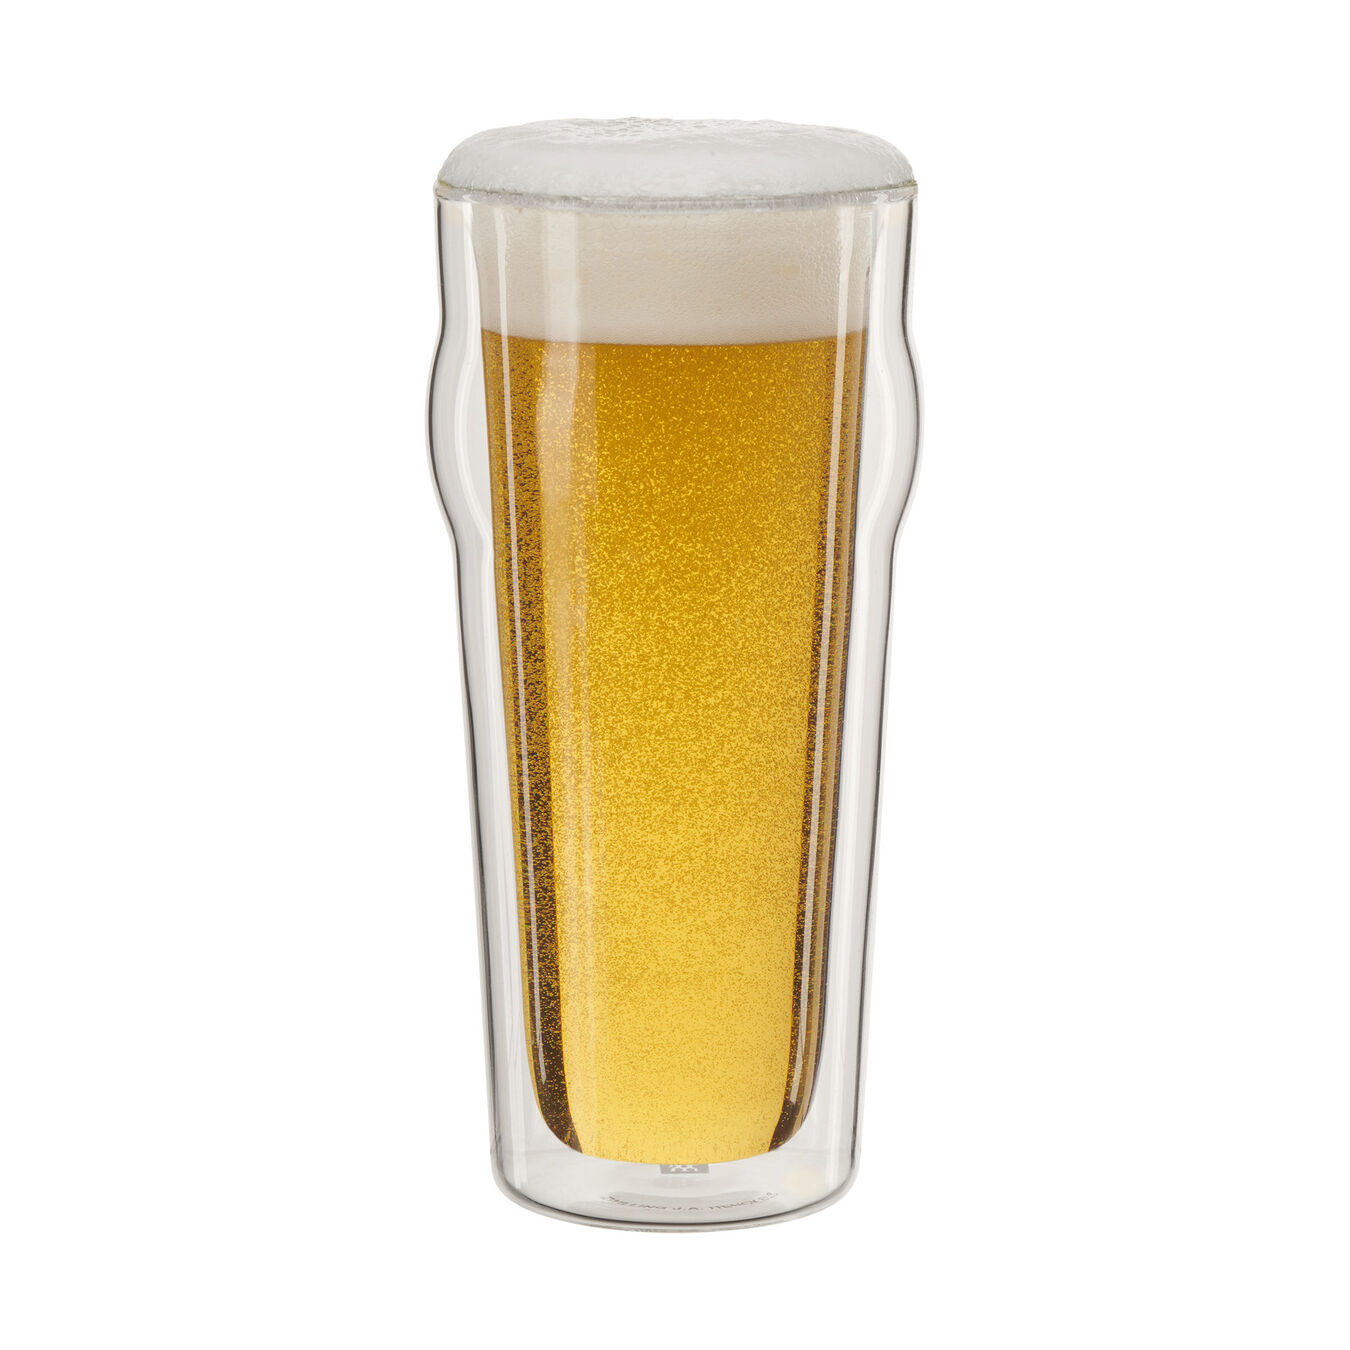 4 Piece Beer glass set,,large 2